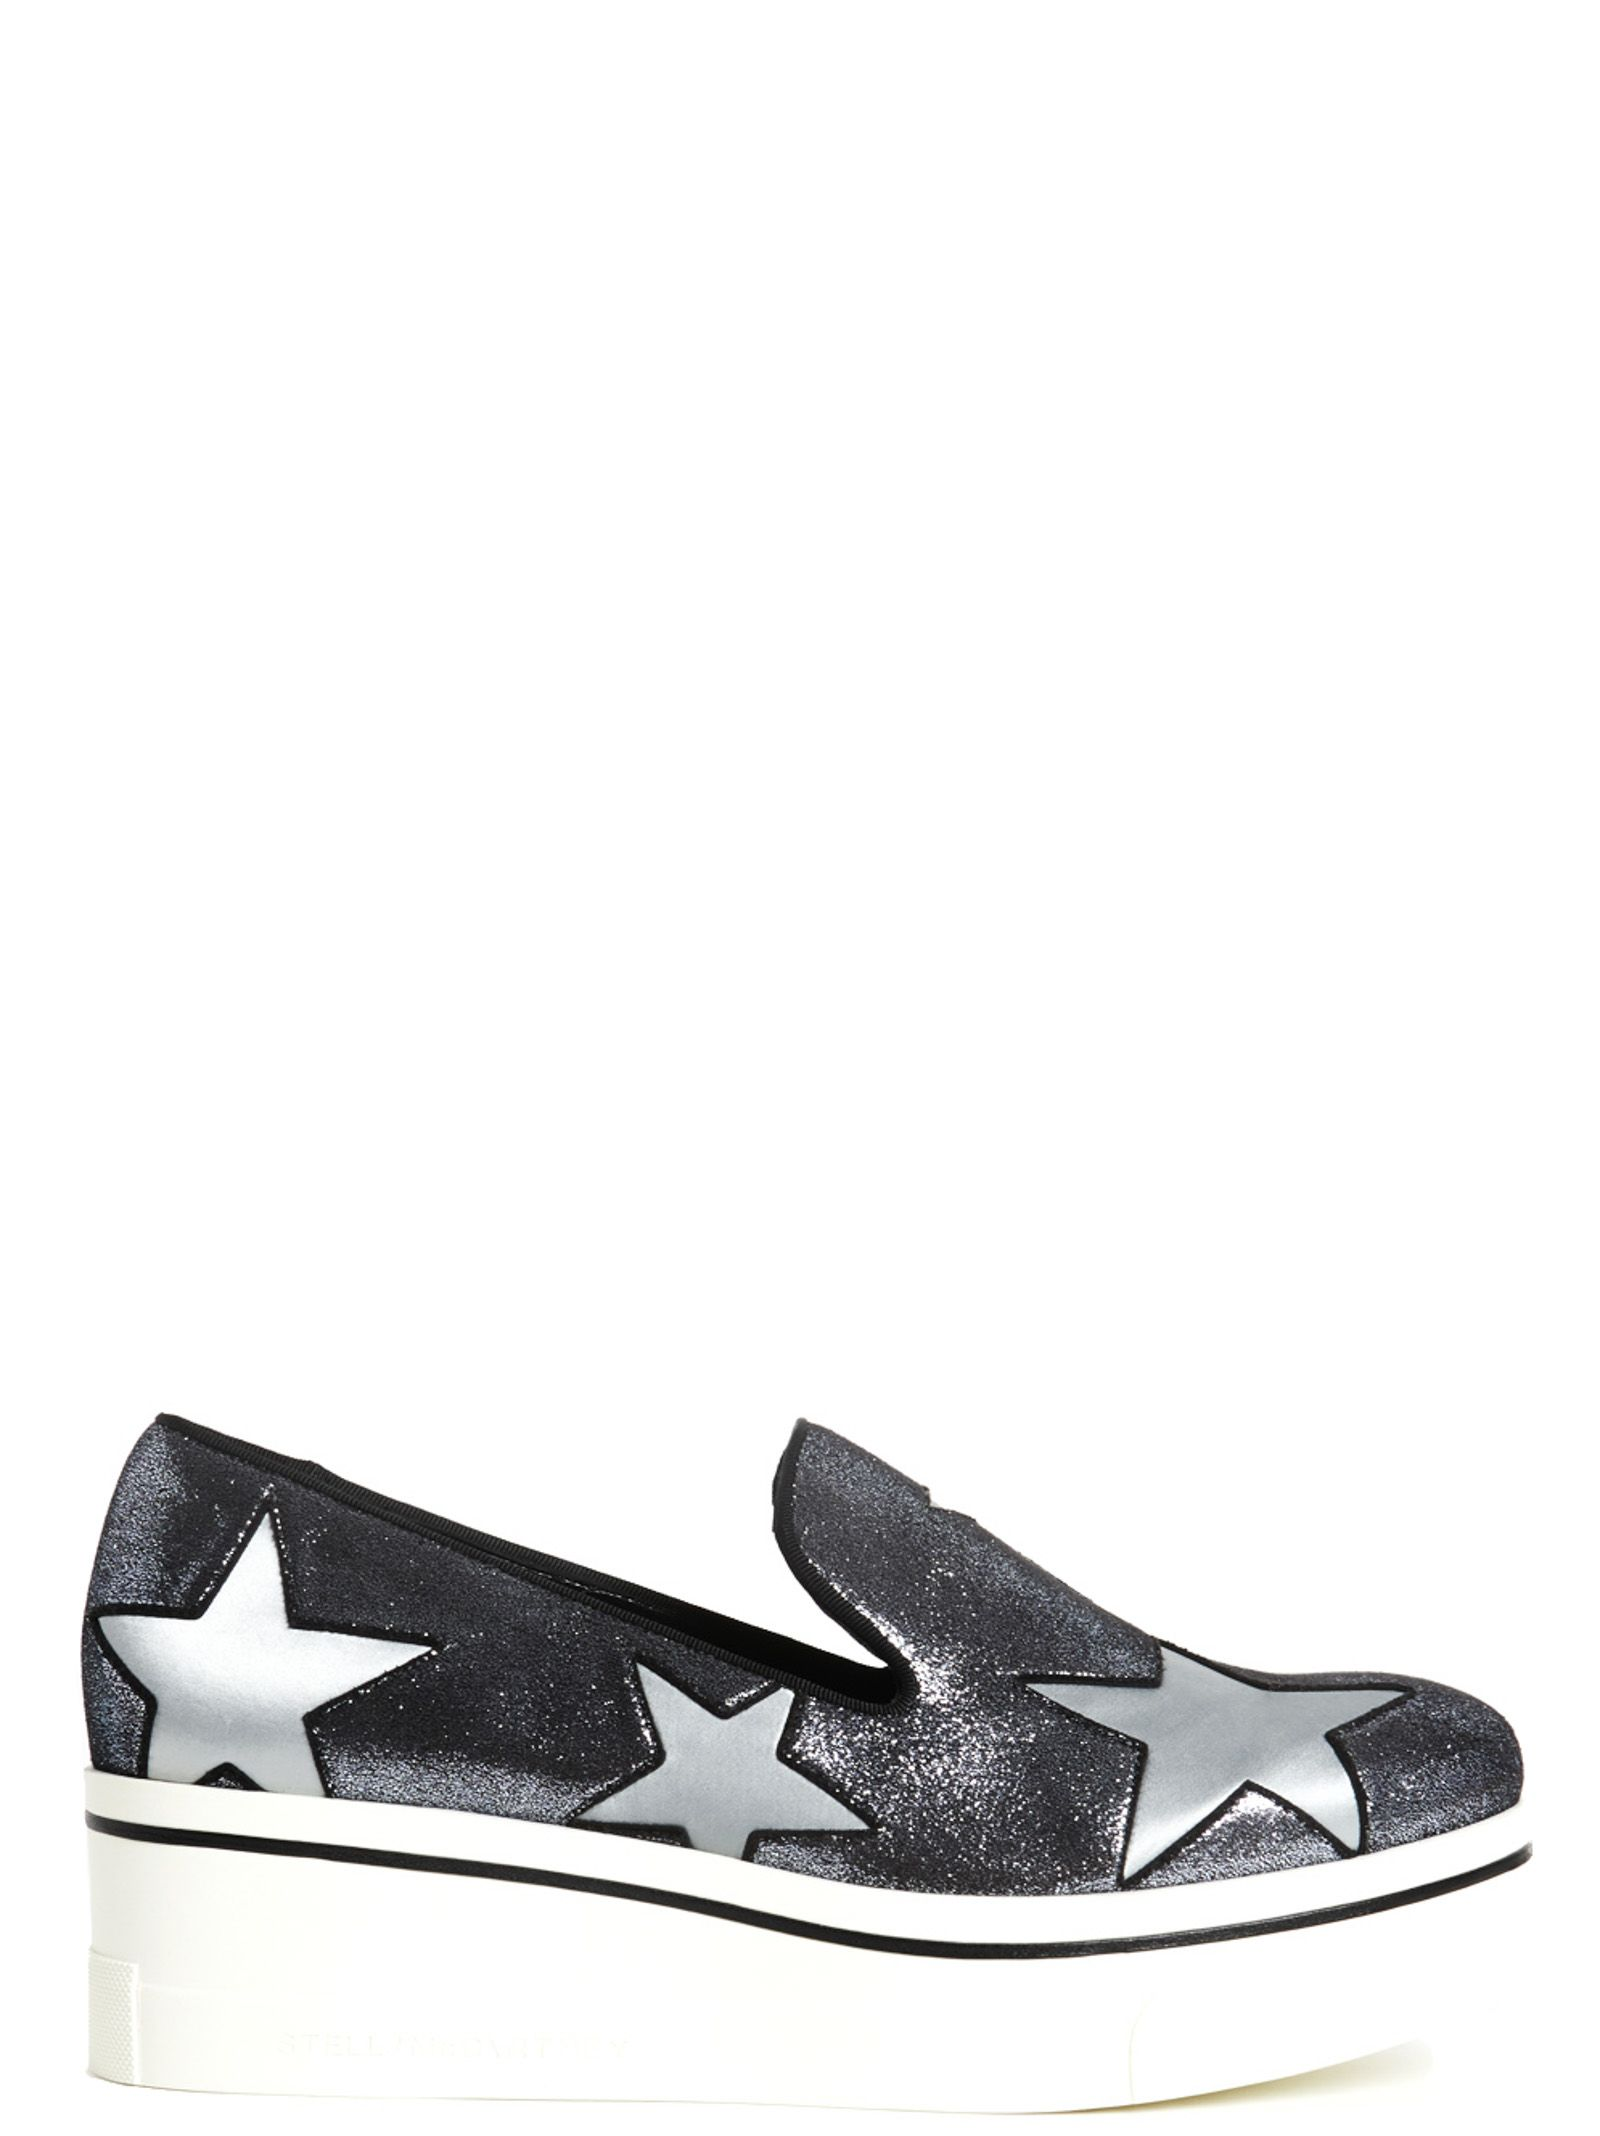 Stella Mccartney Slip-on